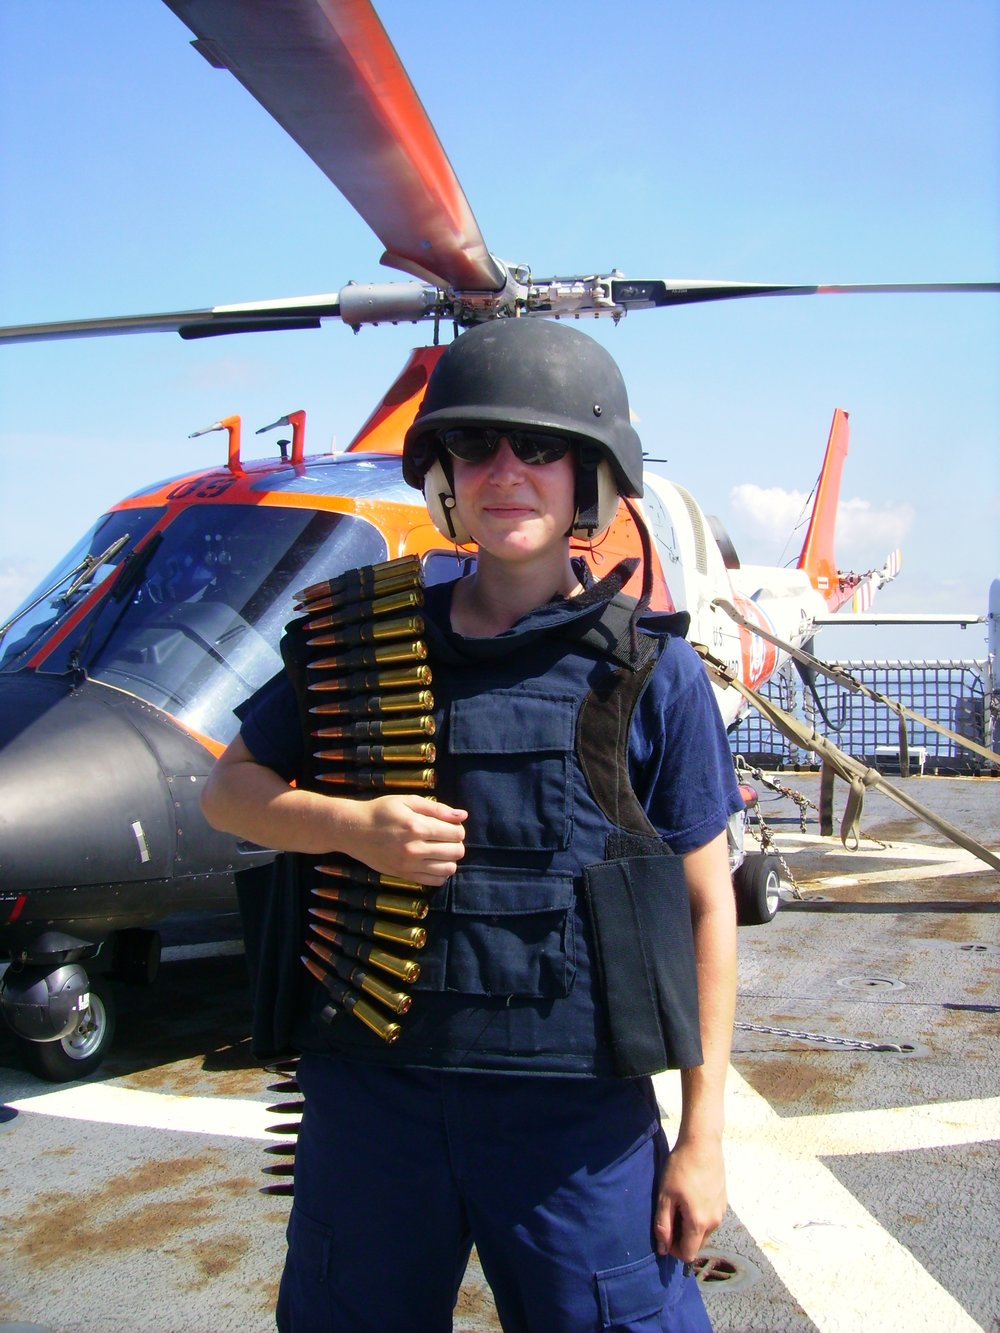 Cadet Tenley Barna on the flight deck of USCGC Morgenthau following a .50 caliber machine gun training exercise in 2007. Photo courtesy of Tenley Lozano.